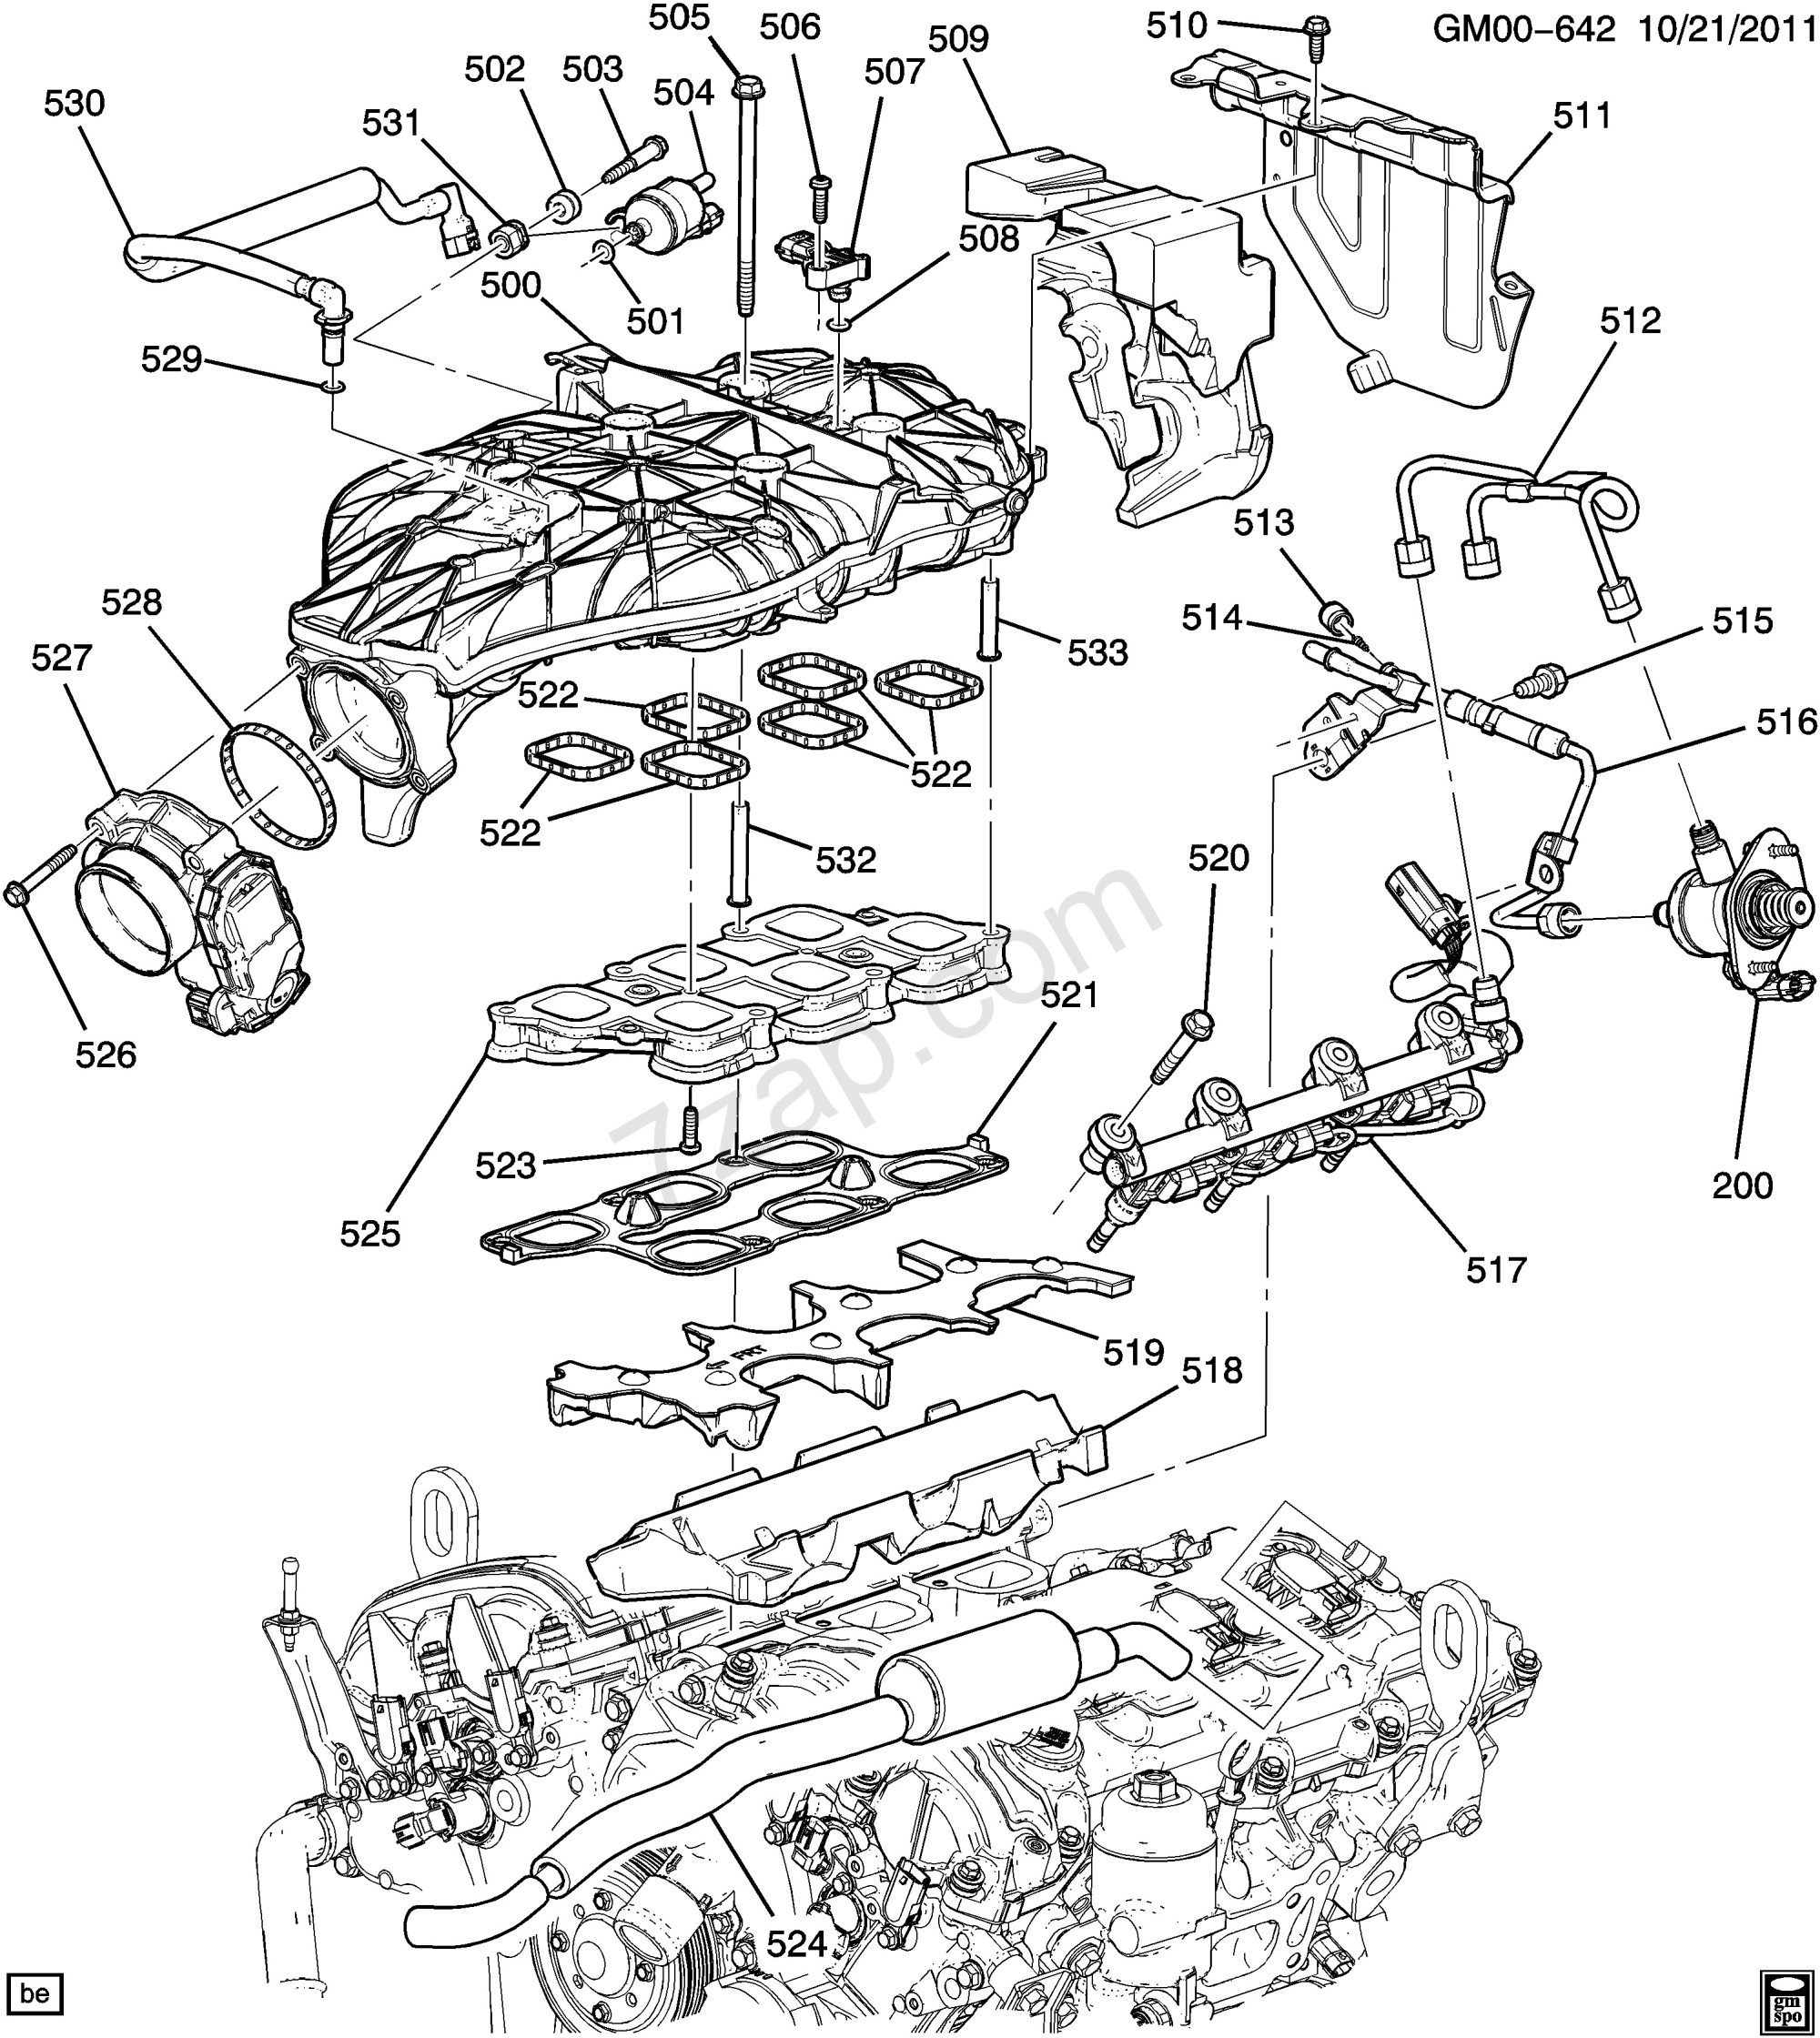 hight resolution of chrysler 3 3 engine diagram wiring diagram perfomance chrysler 3 3 engine diagram